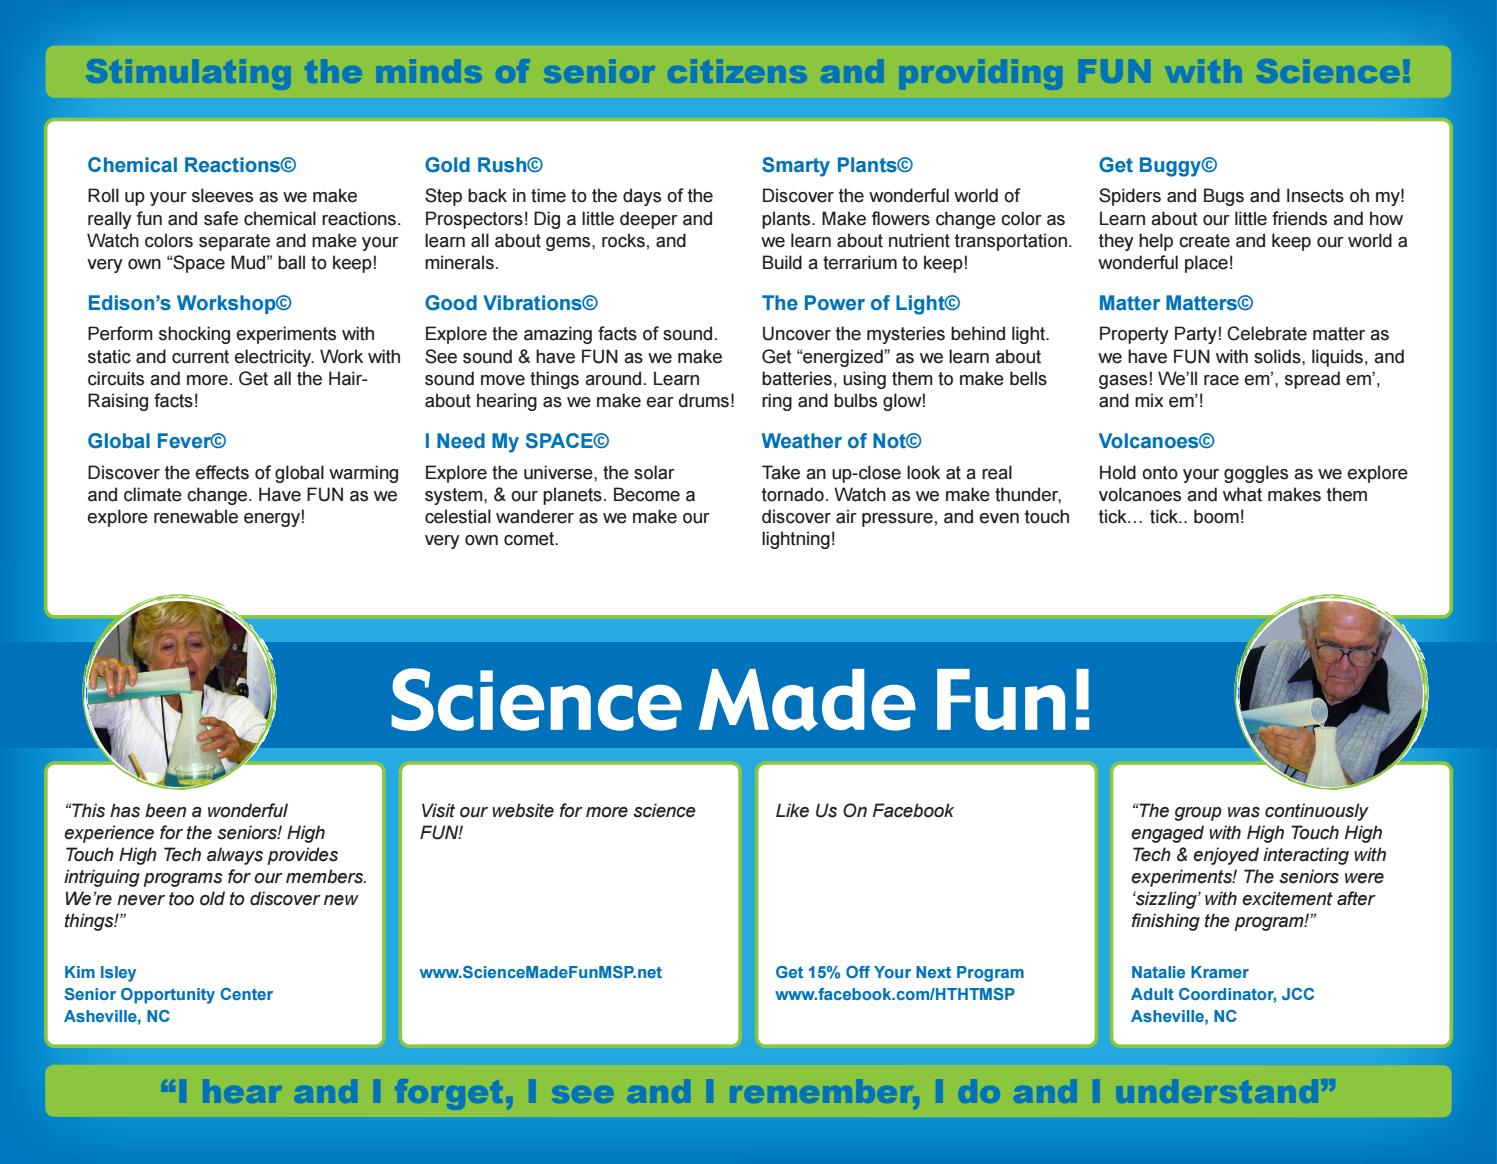 Seniors brochure - High Touch High Tech of Twin Cities by